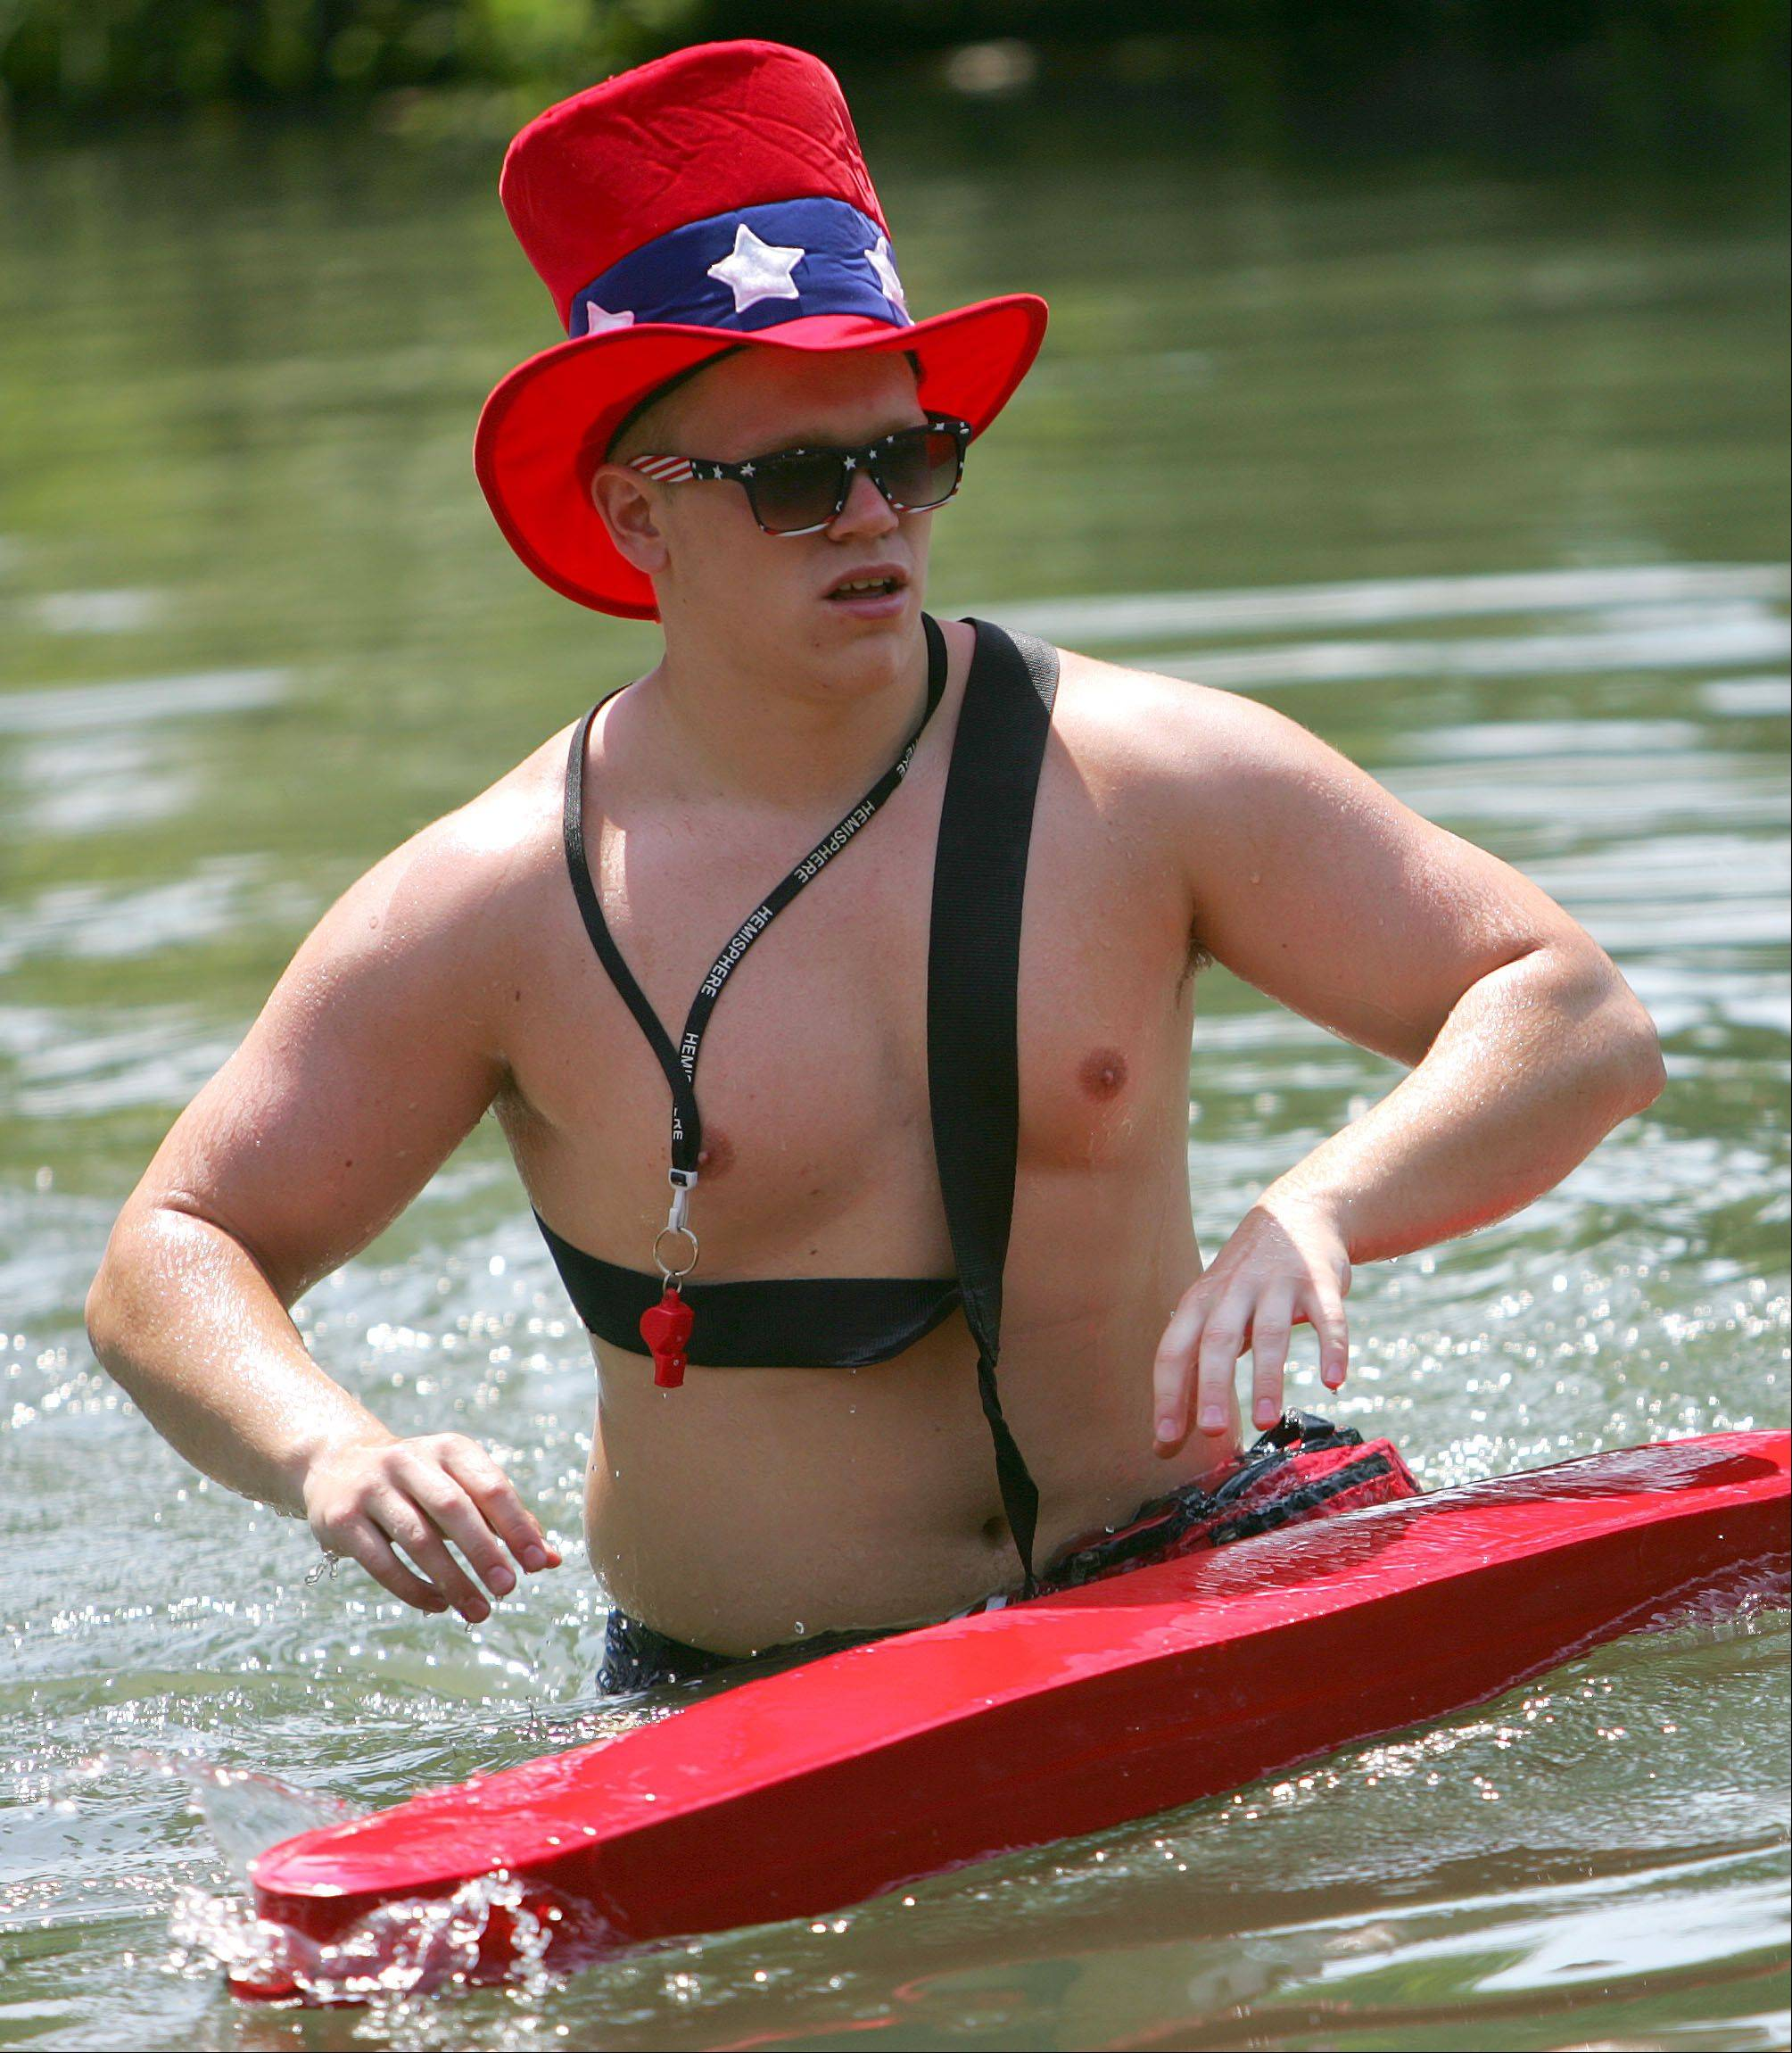 Lifeguard Robert Biedron dons a festive hat at Lincolnshire's Red White and Boom 2012 event Wednesday at Spring Lake Park.